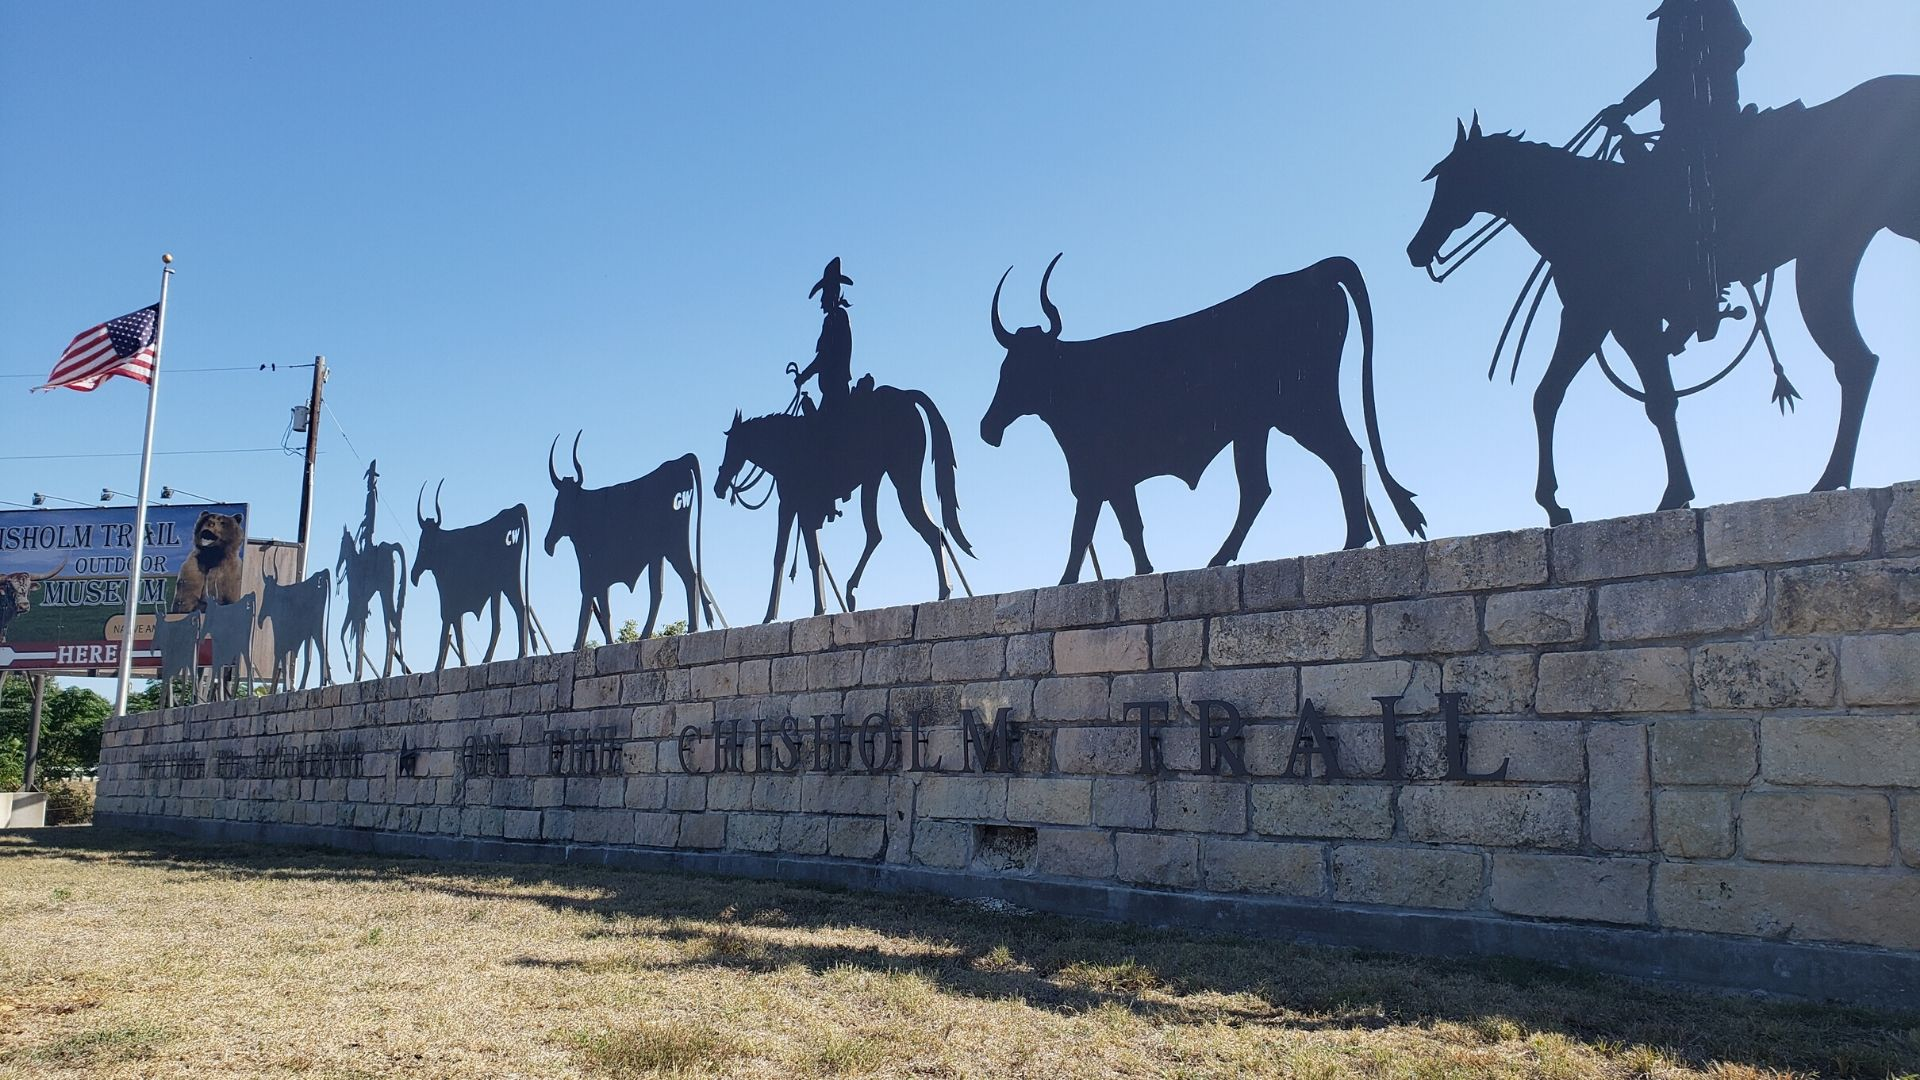 The Chisholm Trail Outdoor Museum